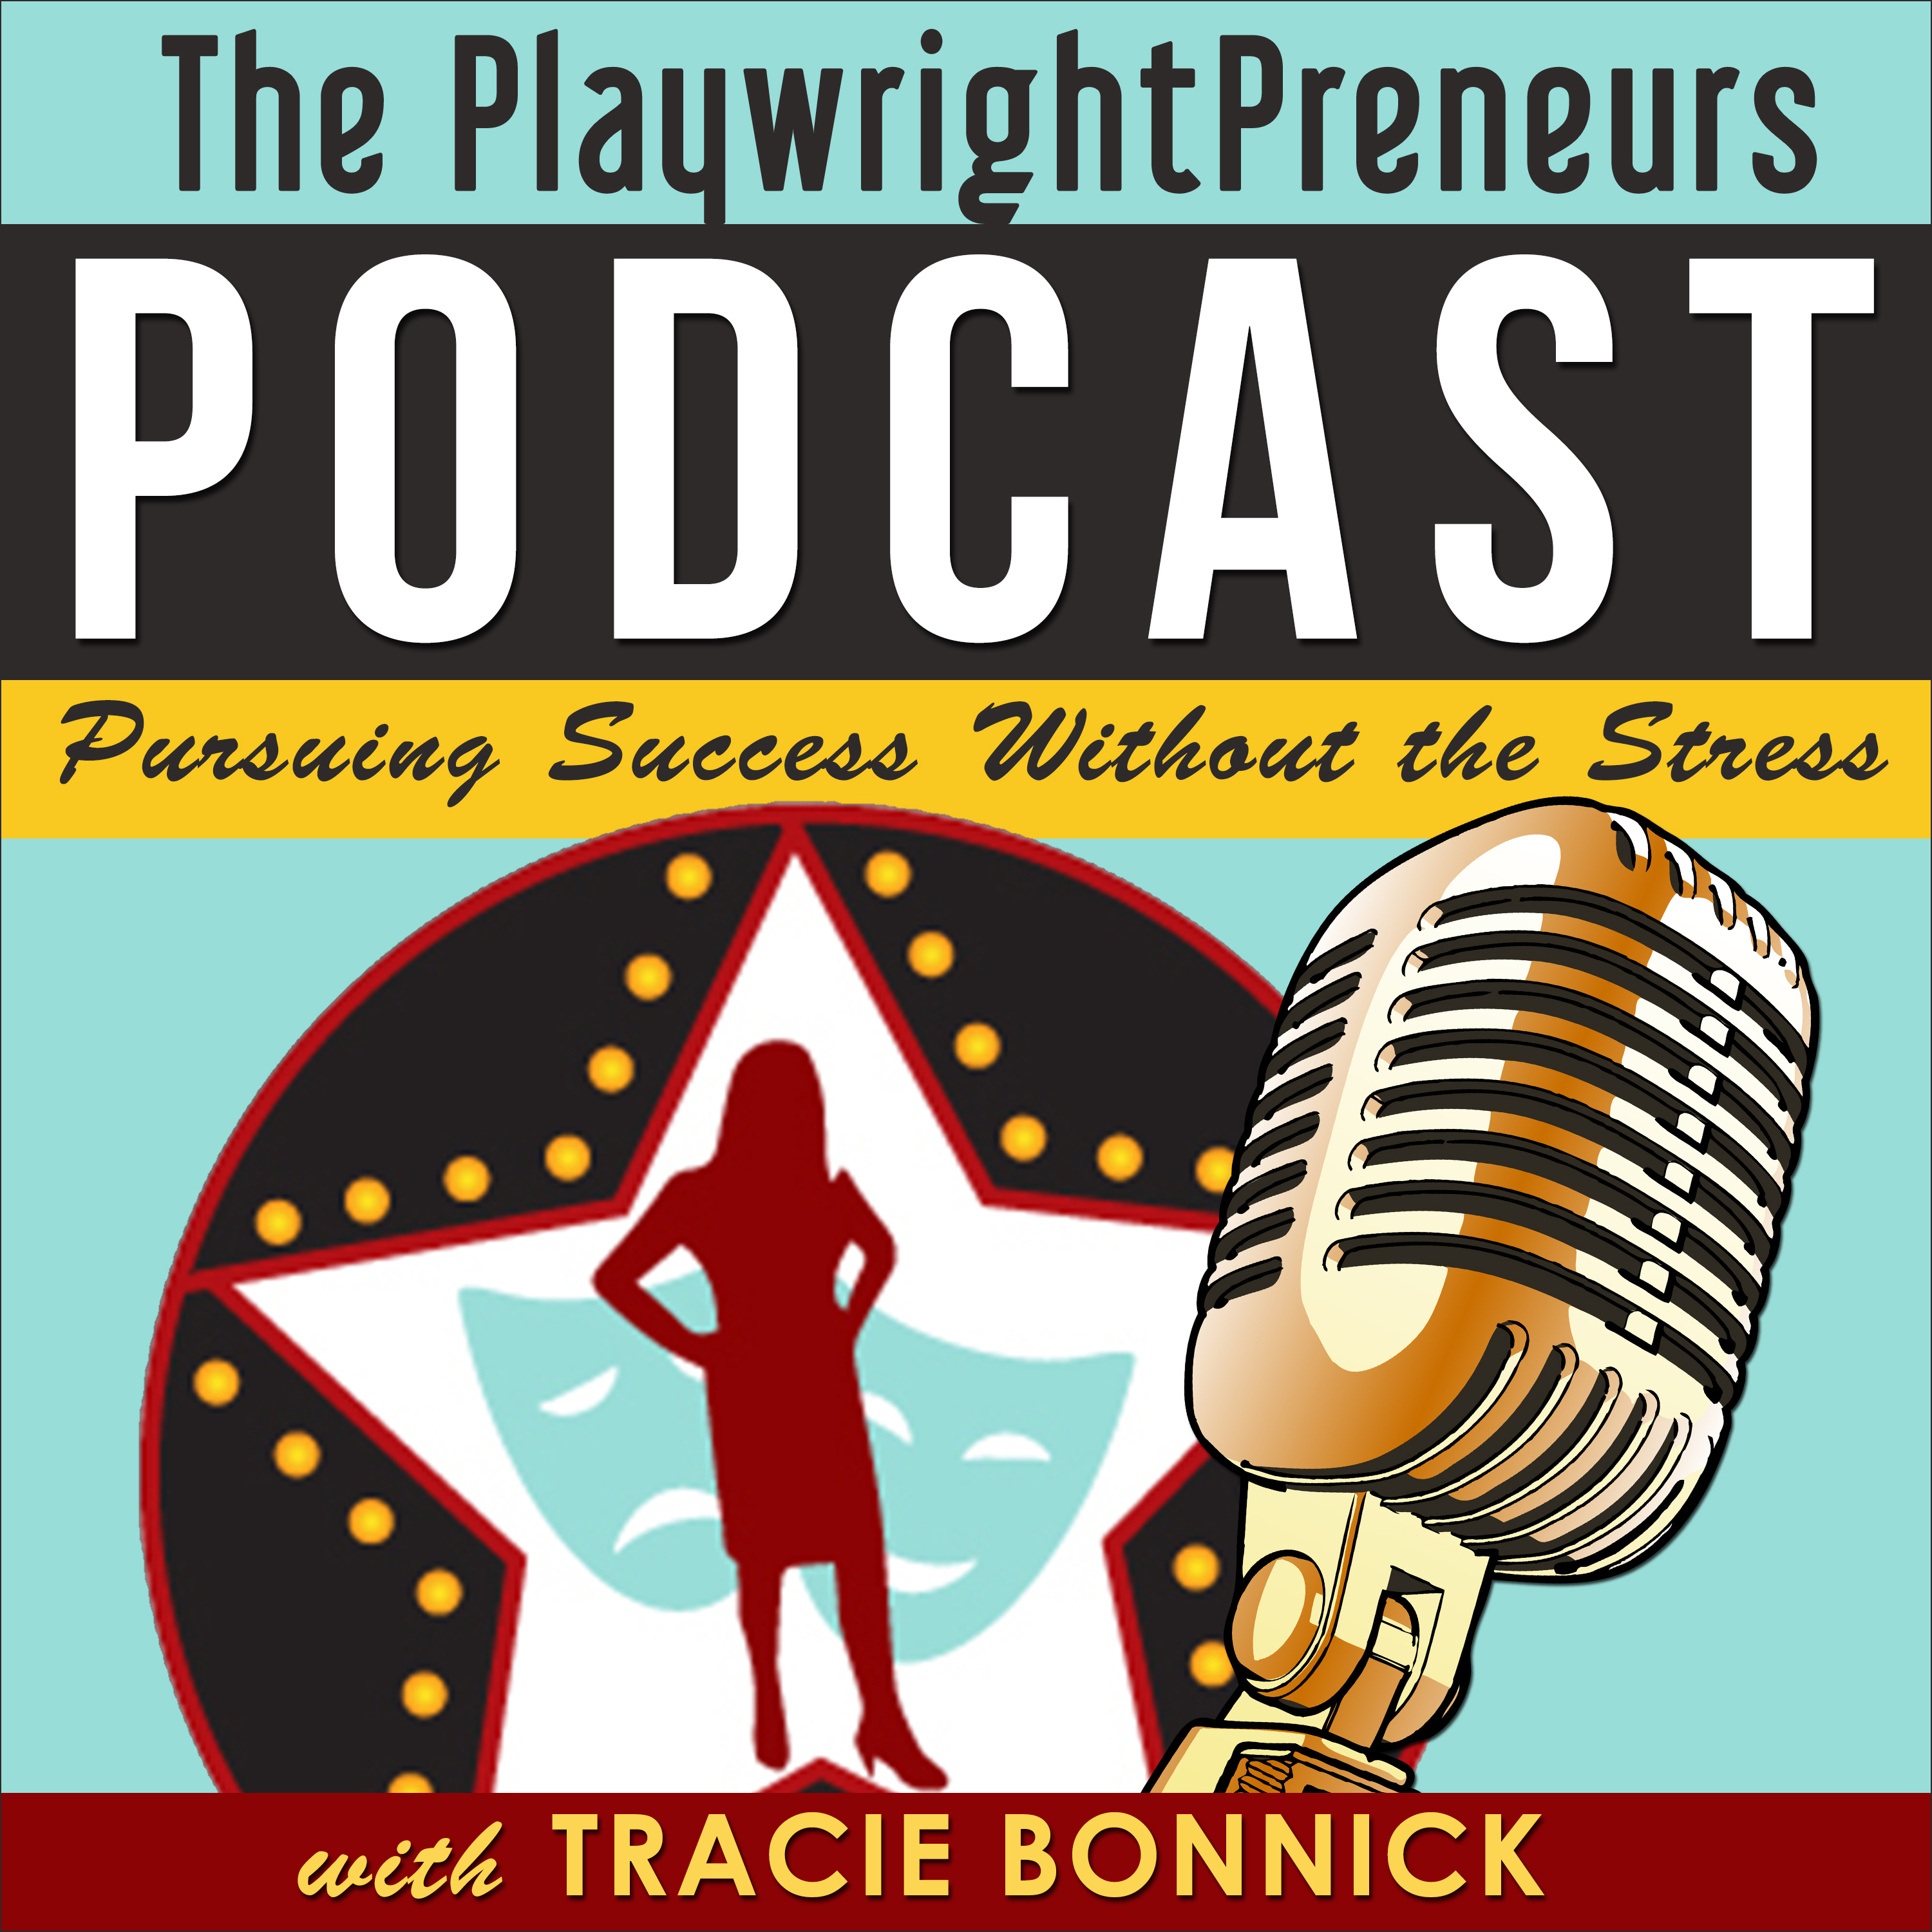 Episode 16: Shawn Rawls Founder of Emotional Physical Theatre show art